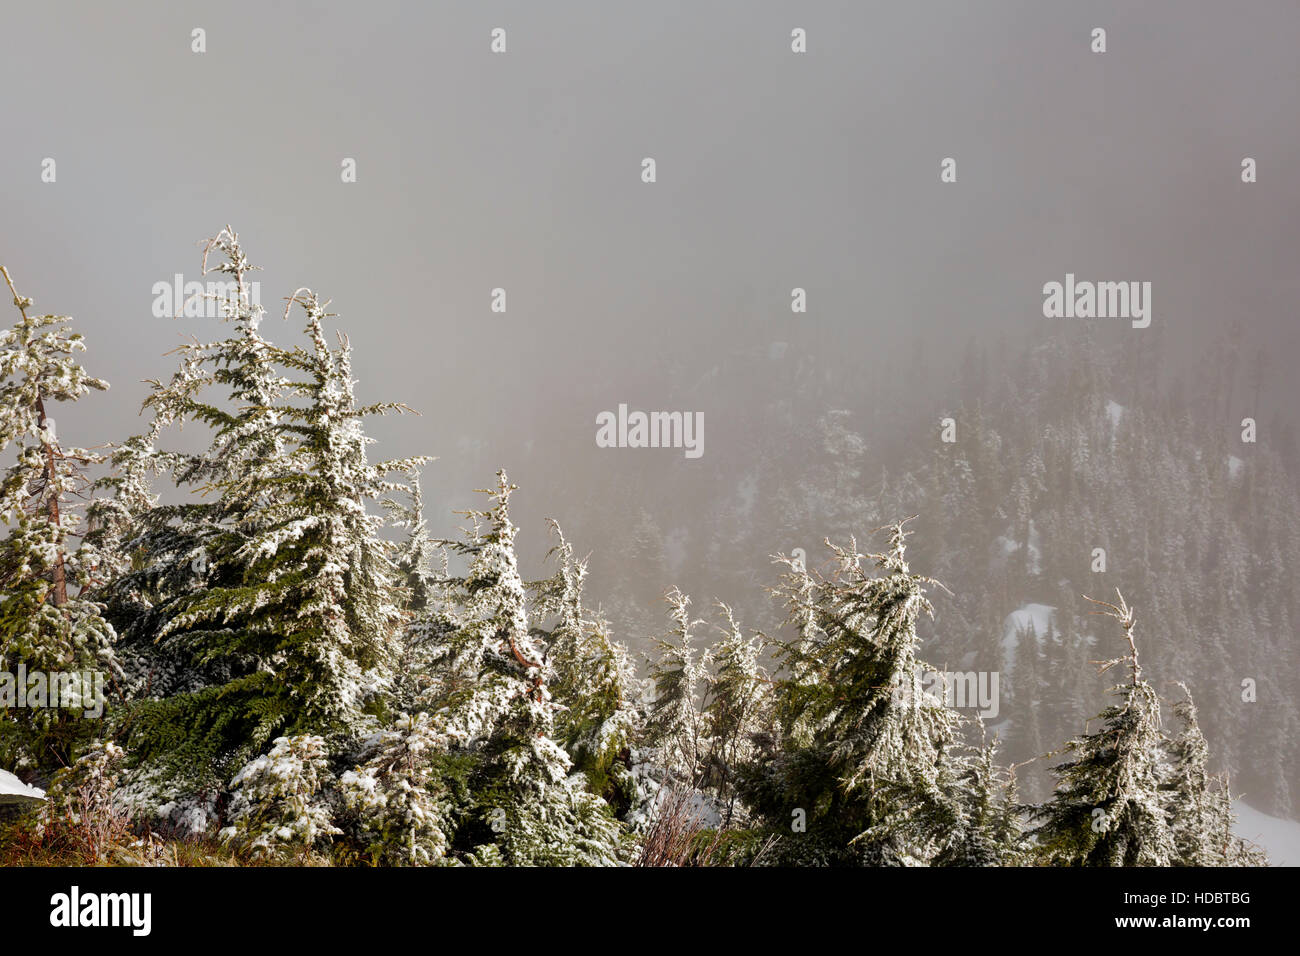 WA12958-00...WASHINGTON - A sunny interlude during a snow storm on the summit of Mailbox Peak in the Cascade Mountains - Stock Image